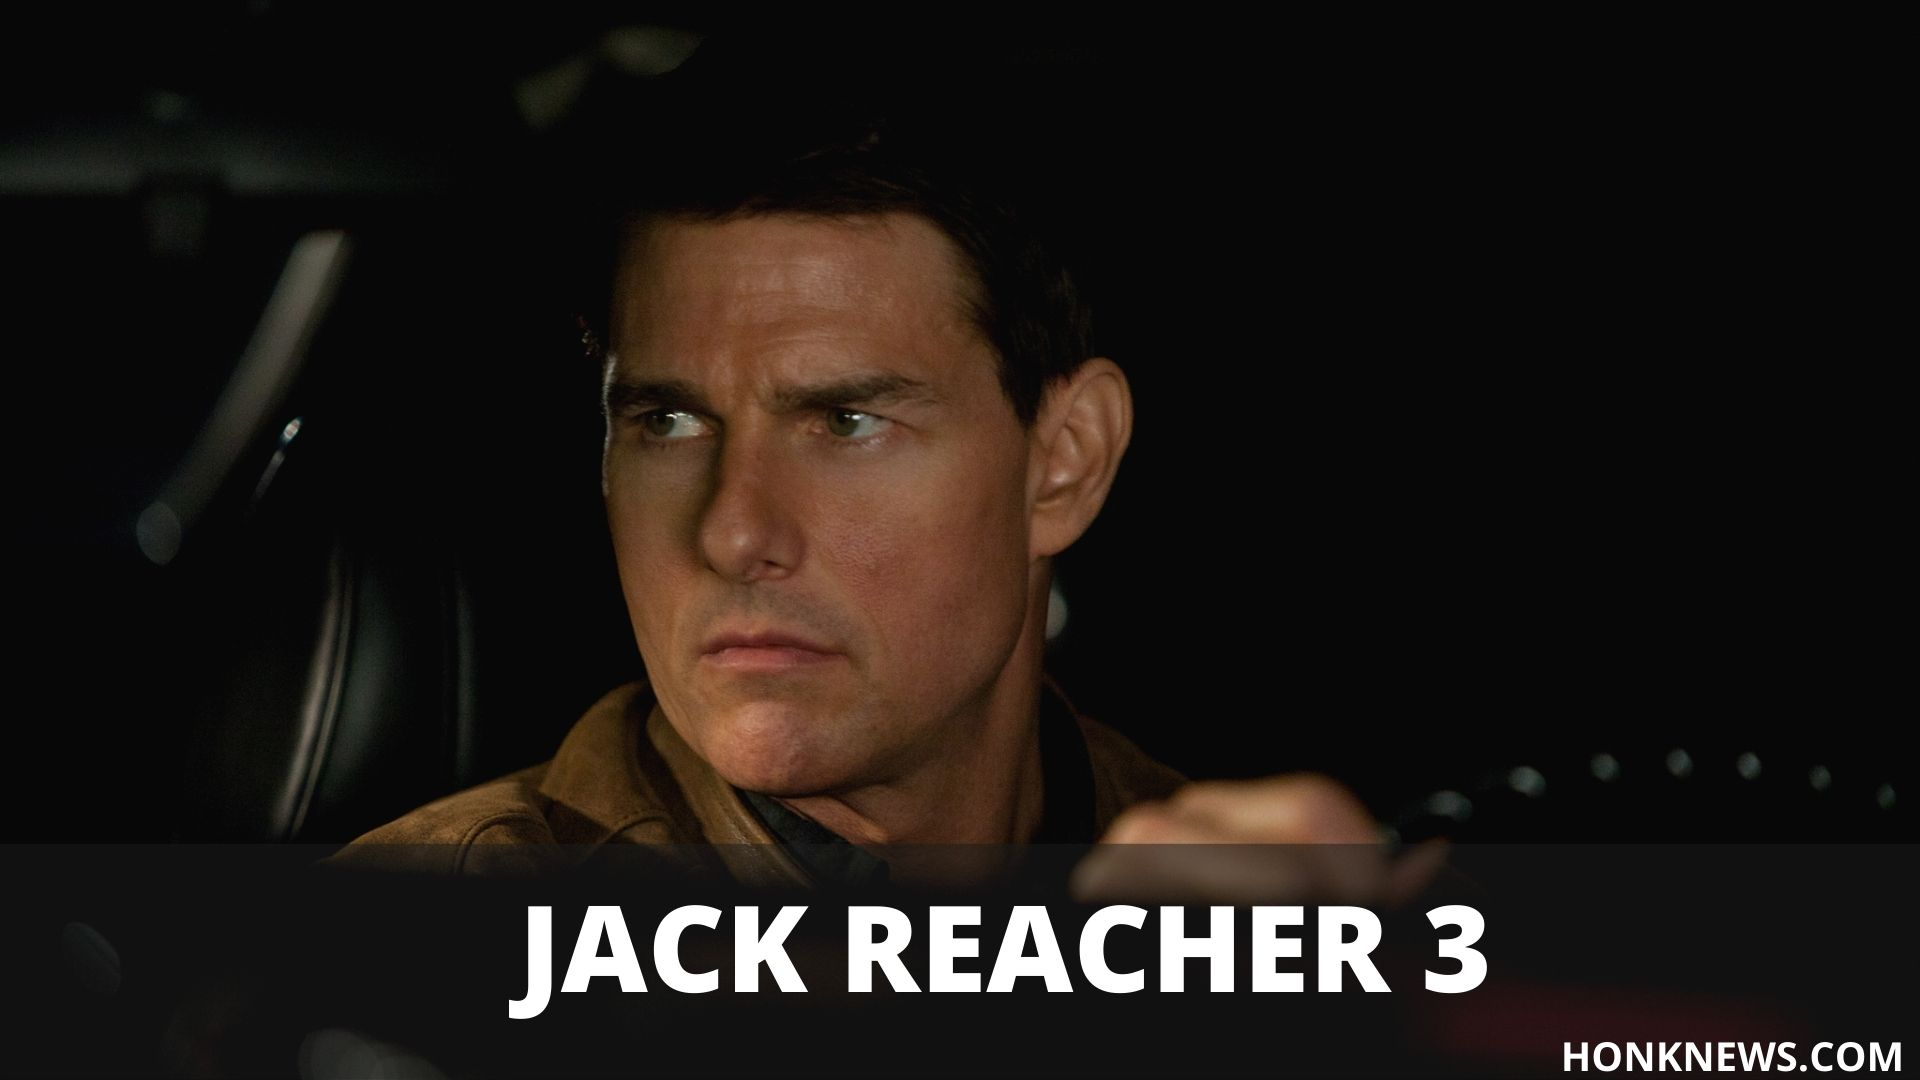 Jack Reacher 3: Is It Coming Back For A Third Action Adventure?